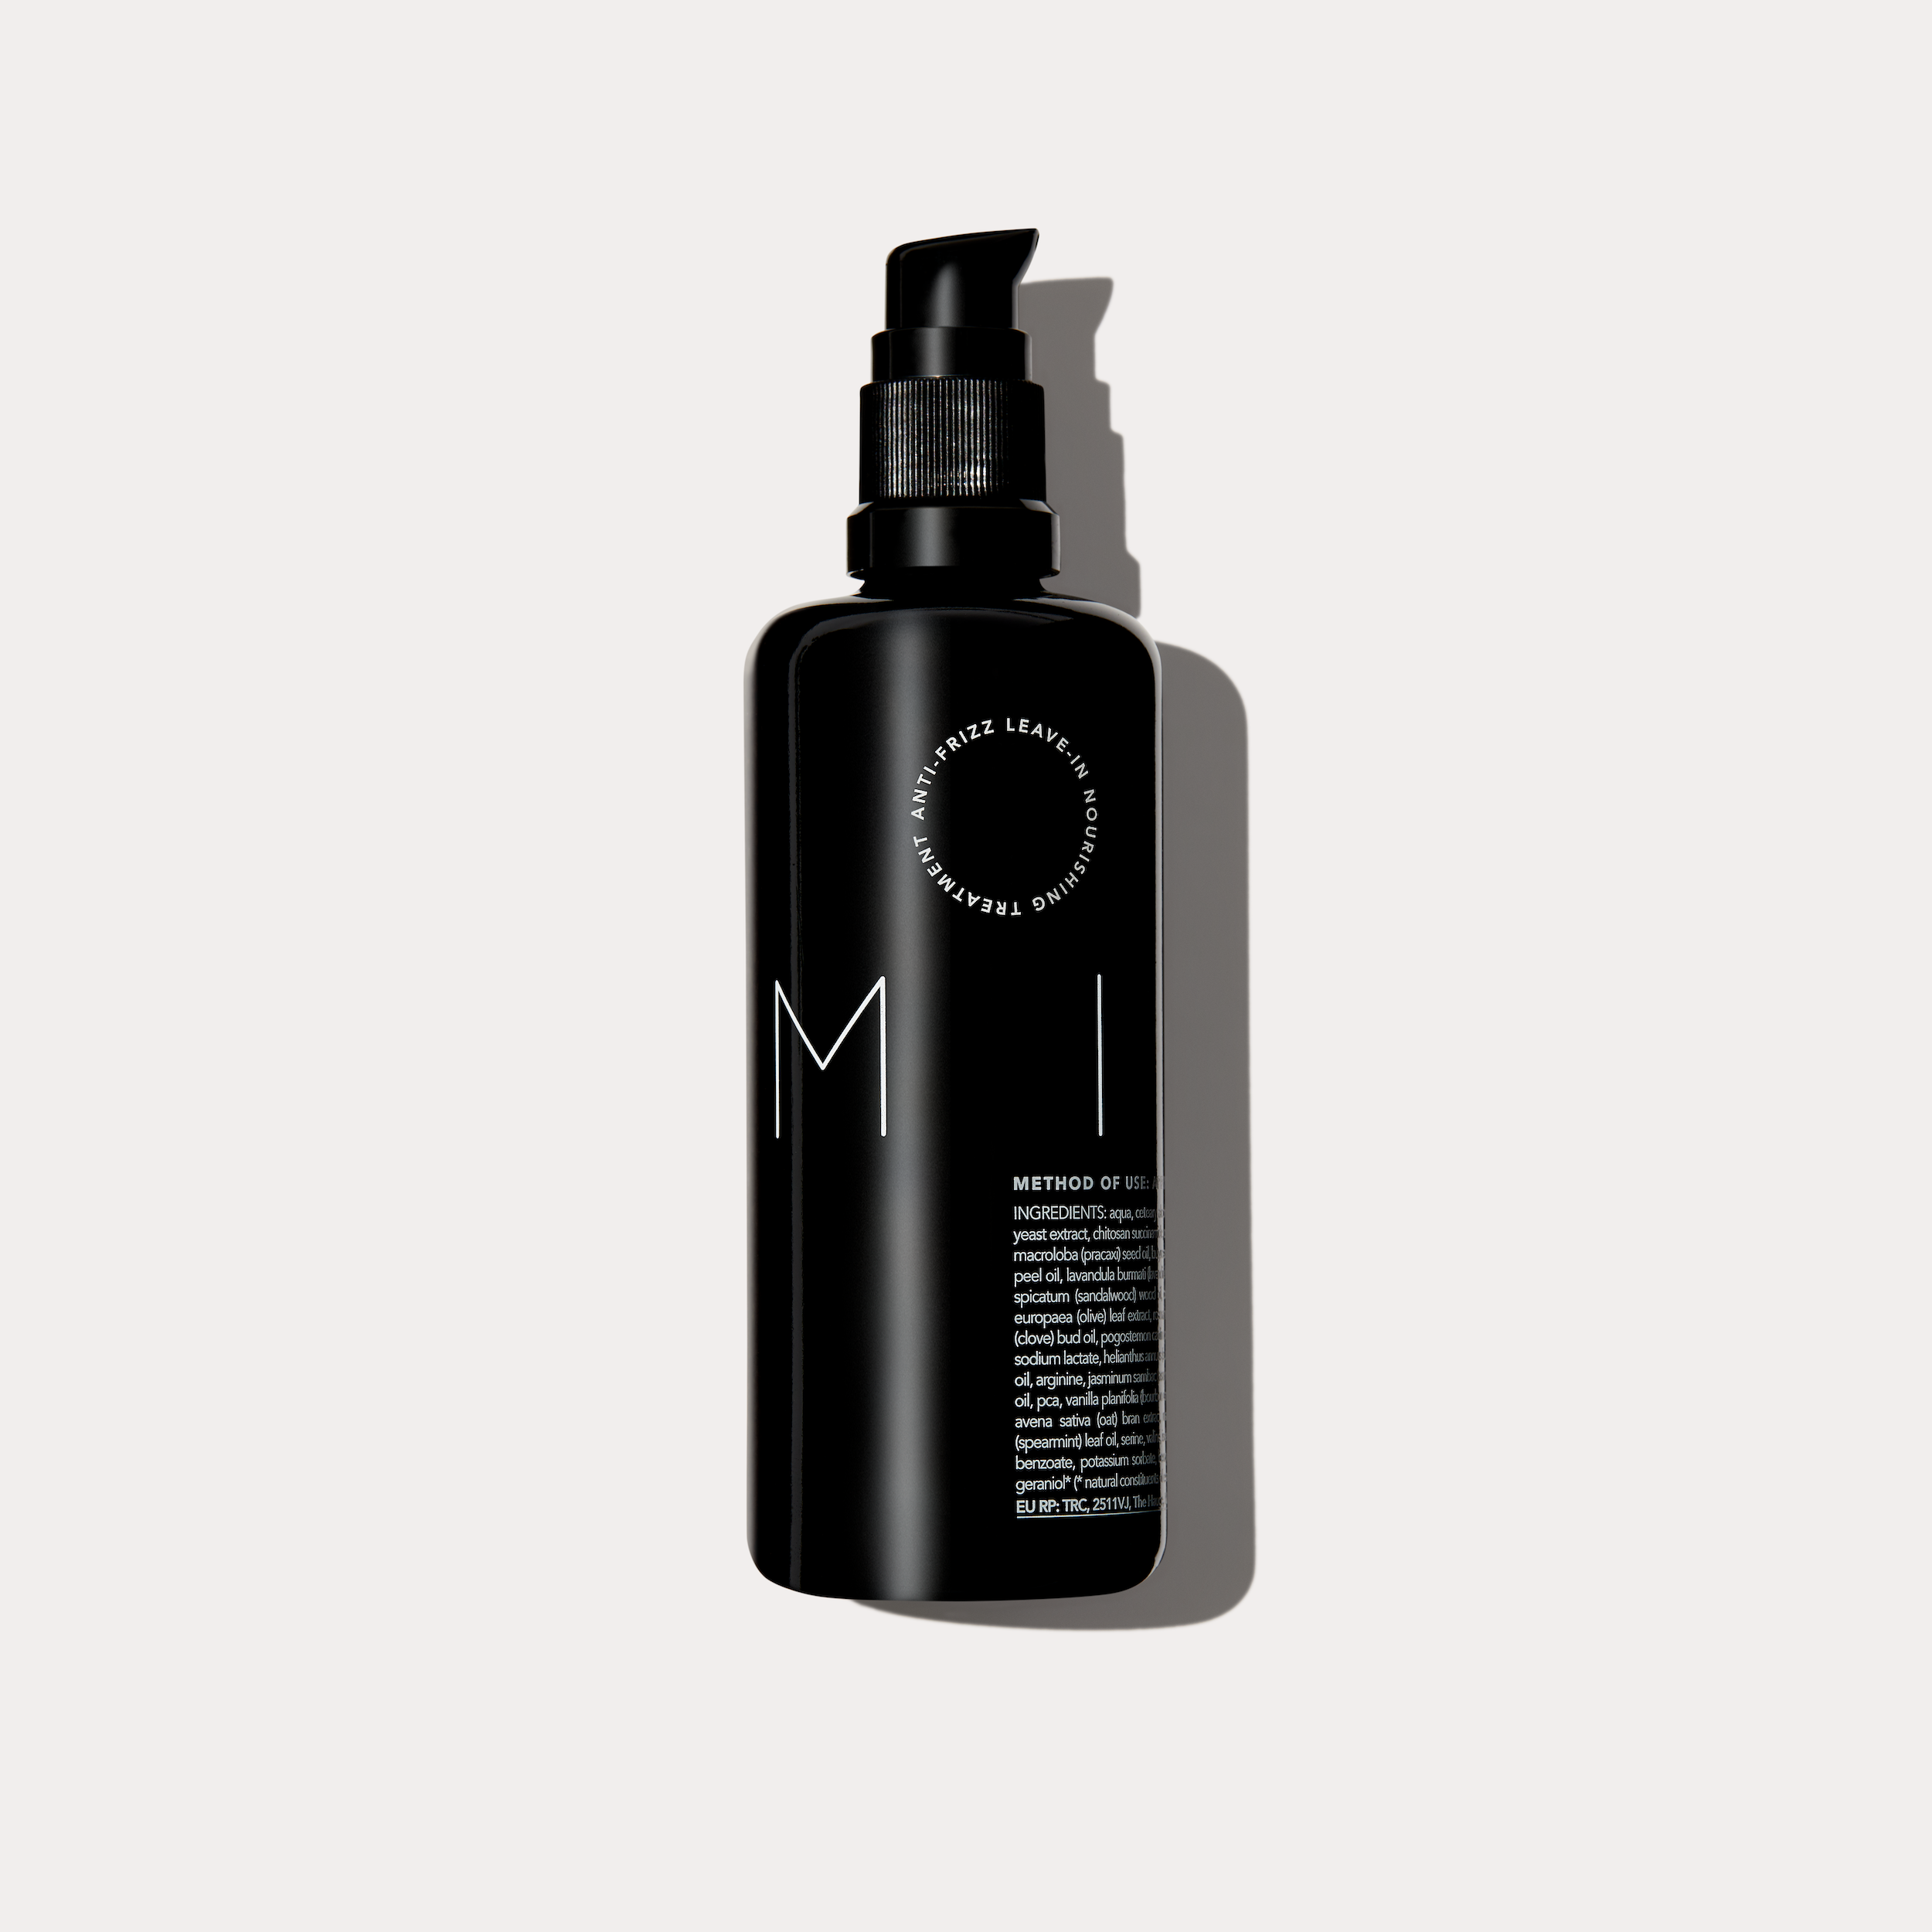 Milk Anti Frizz Leave in treatment black glass bottle against an off white background